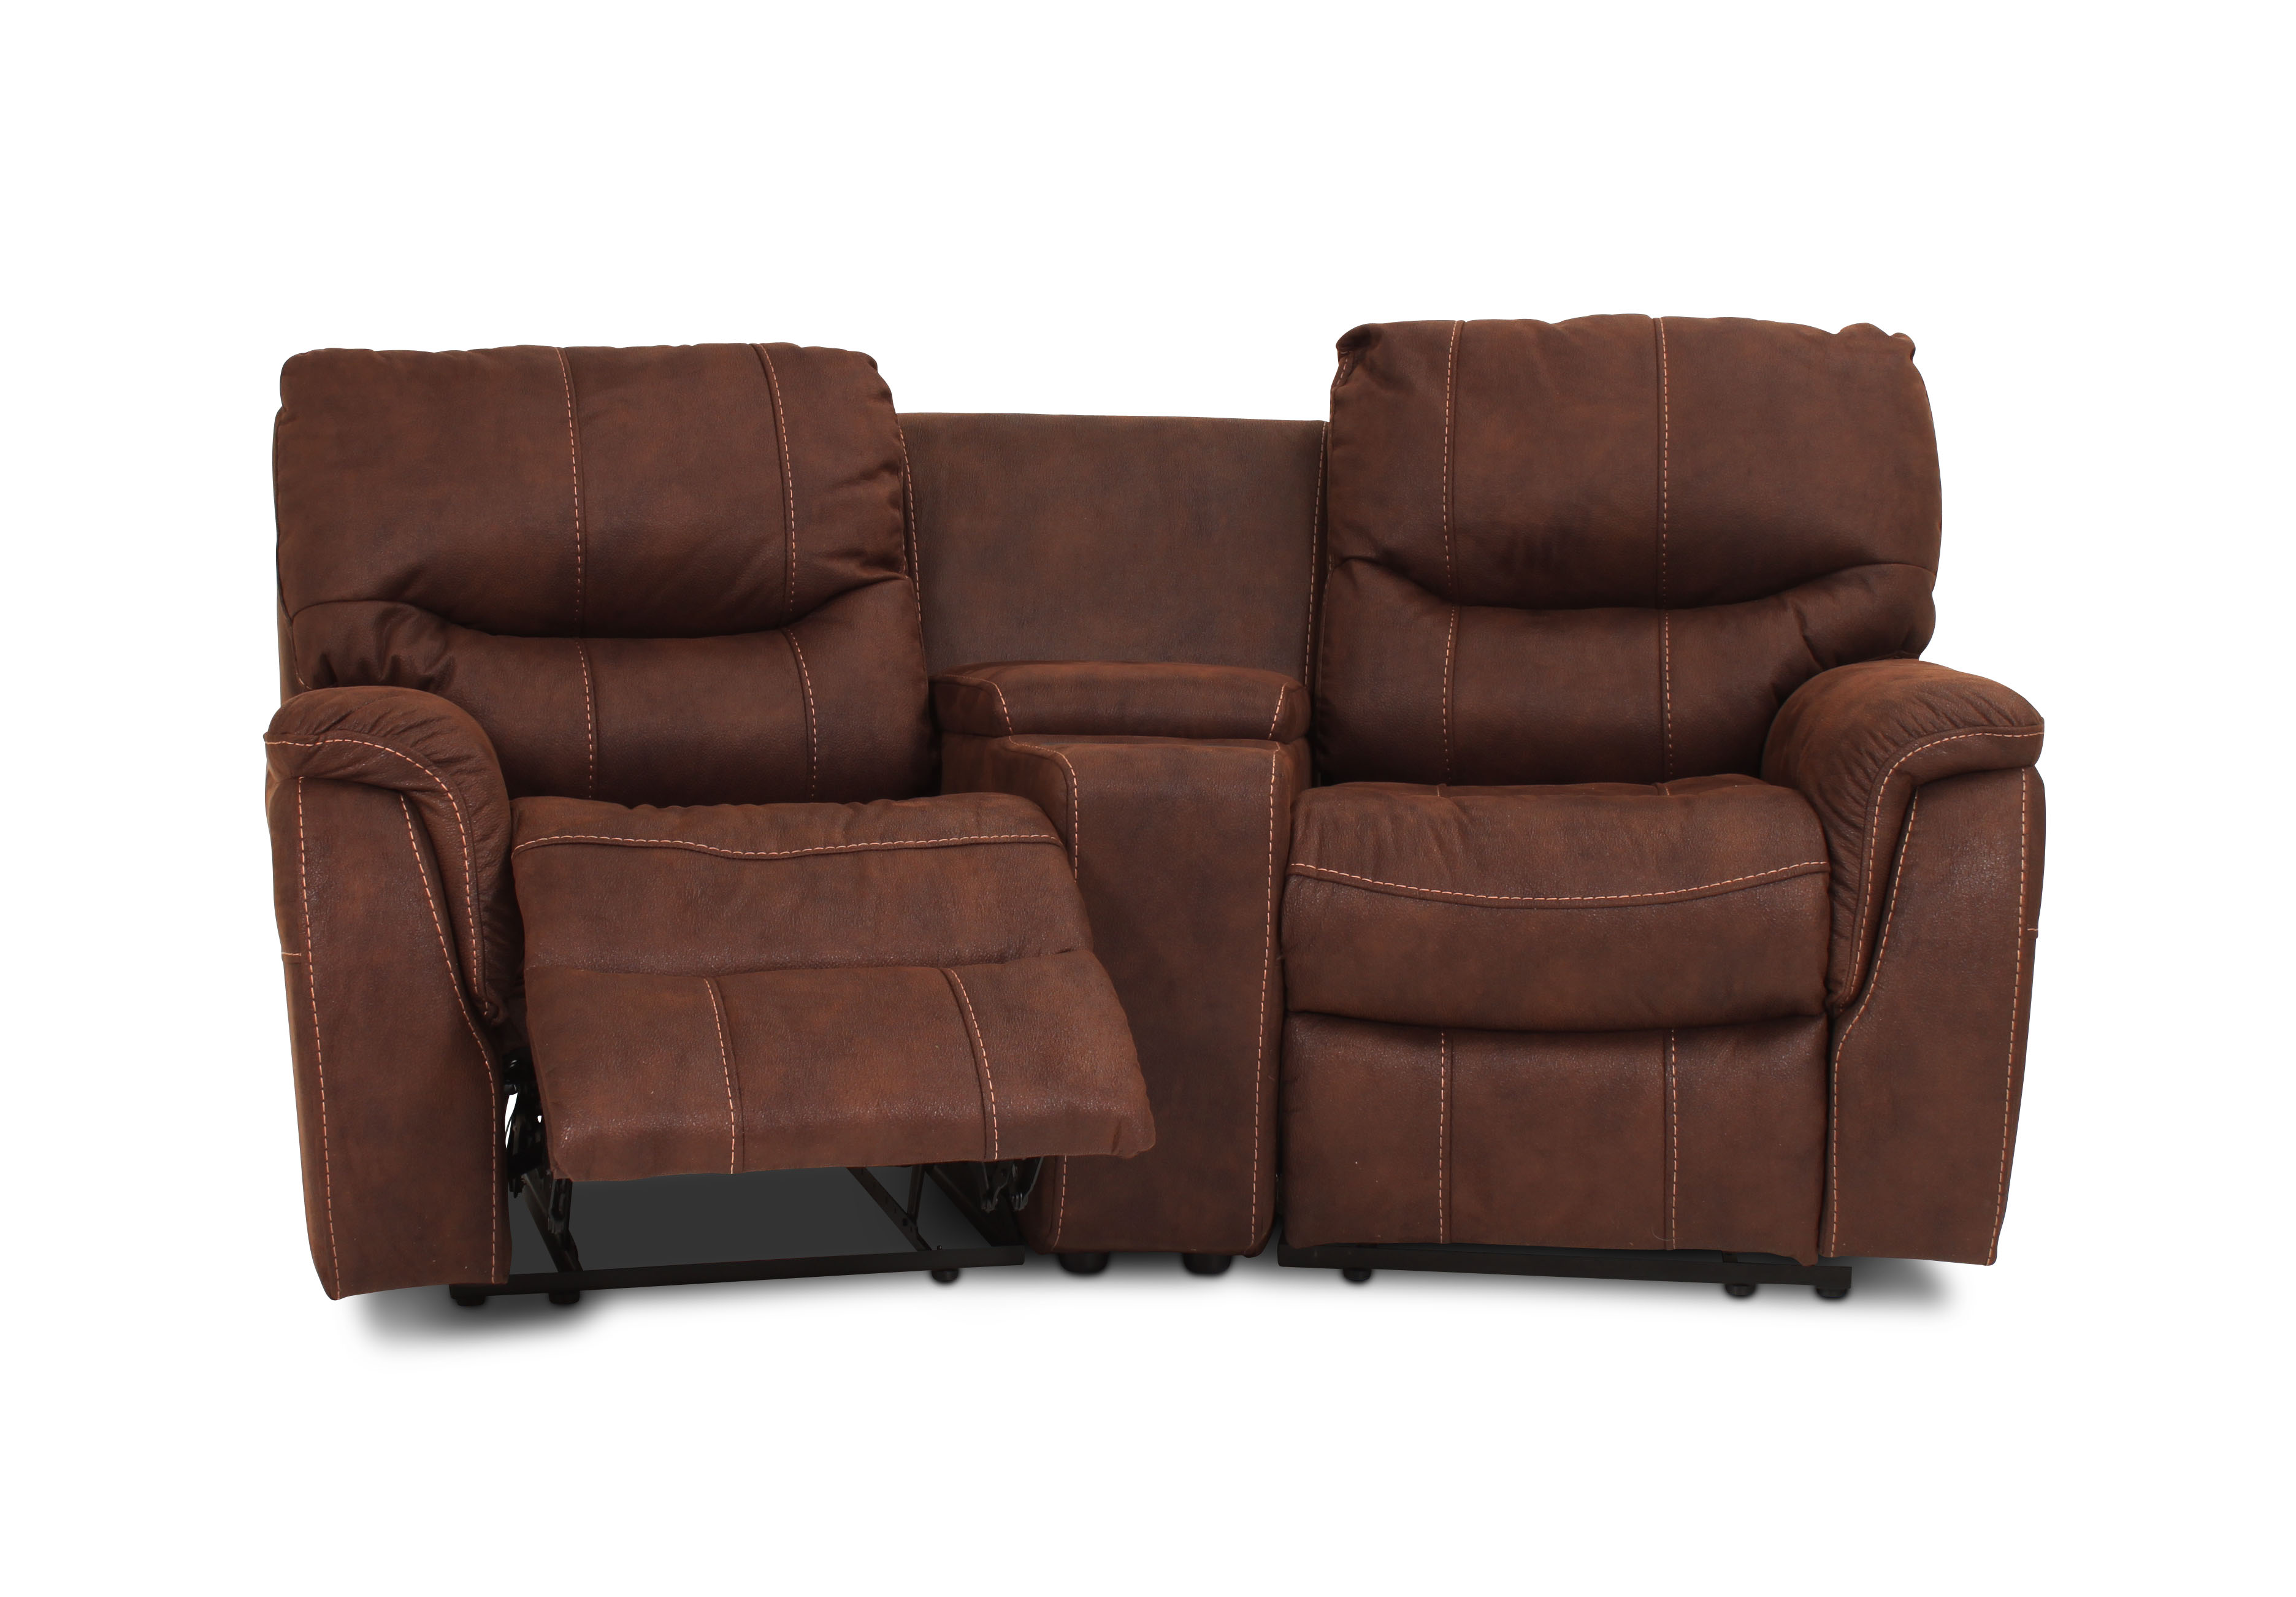 Colorado Recliner 2:a brun